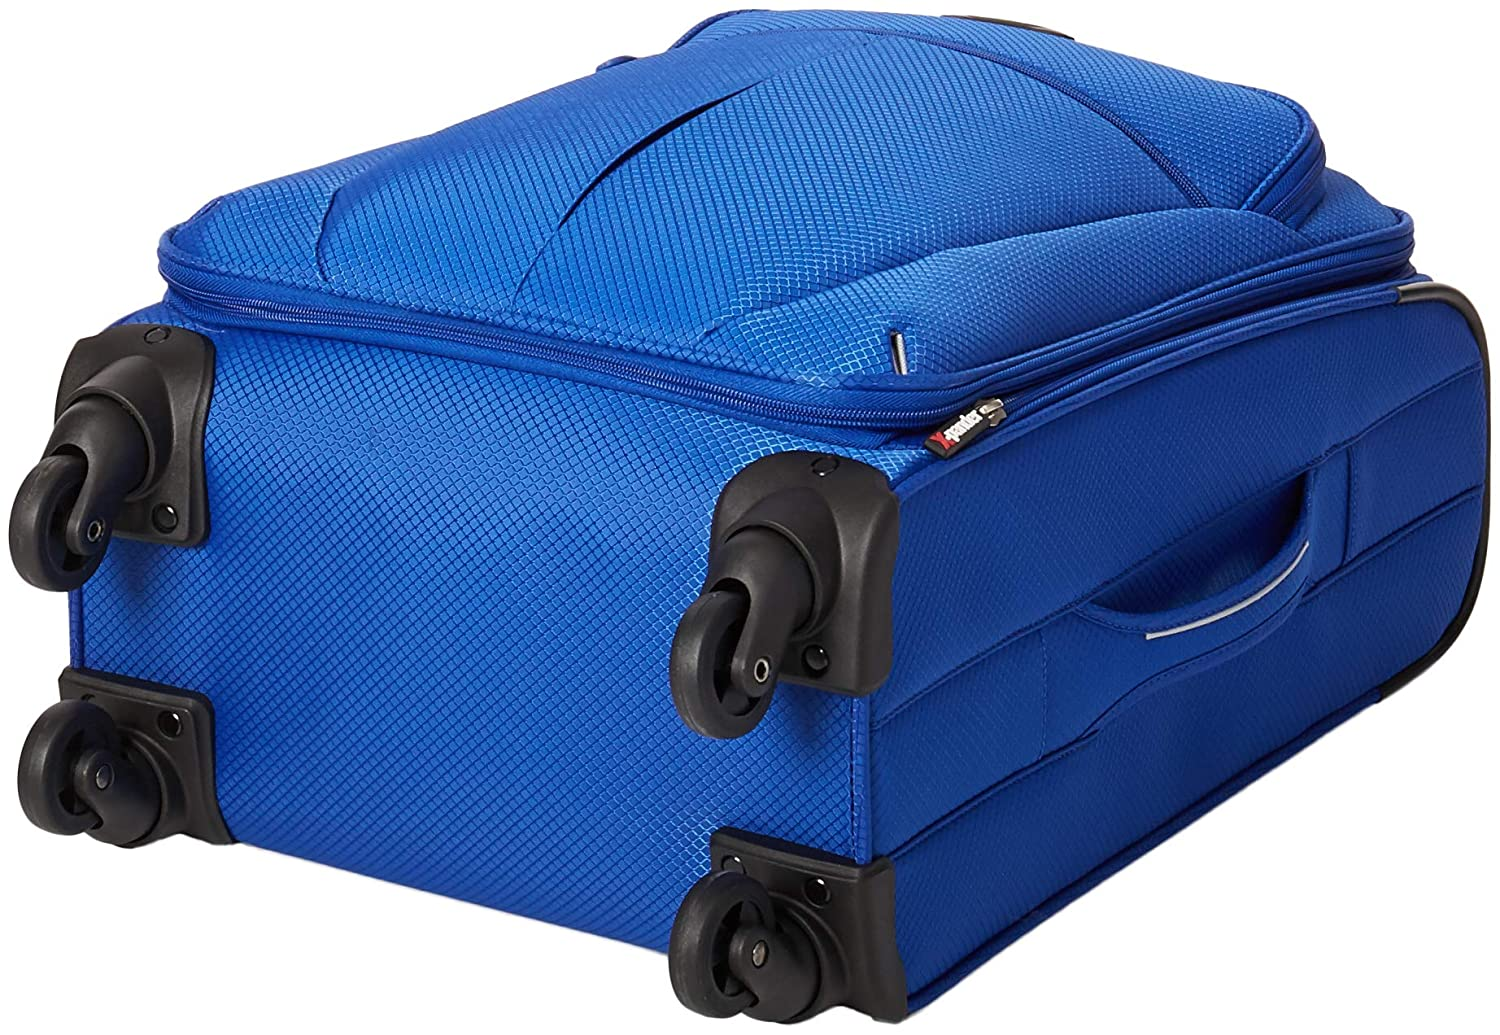 Maritime Blue Skyway Luggage Mirage Ultralite 20-Inch One Size 4 Wheel Expandable Carry-On